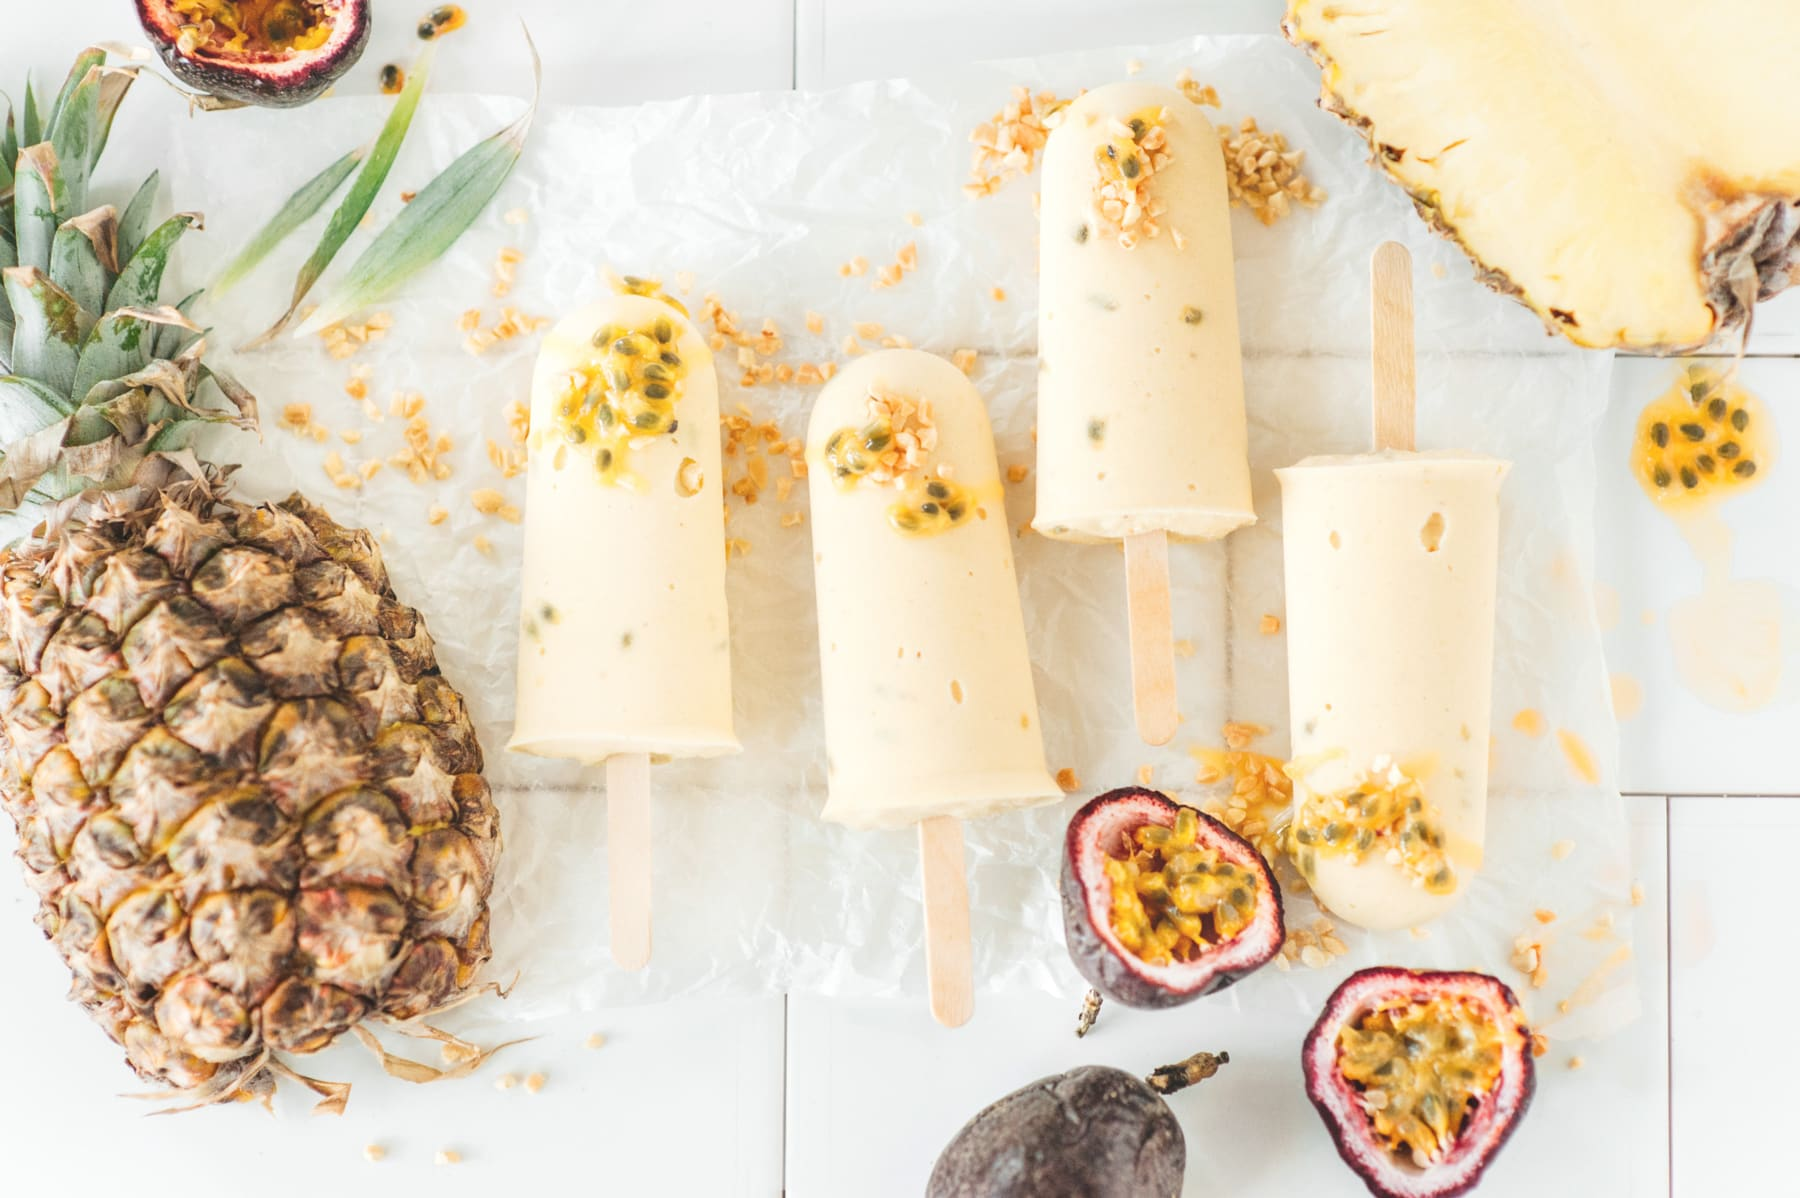 Tropical fruit popsicles image 2